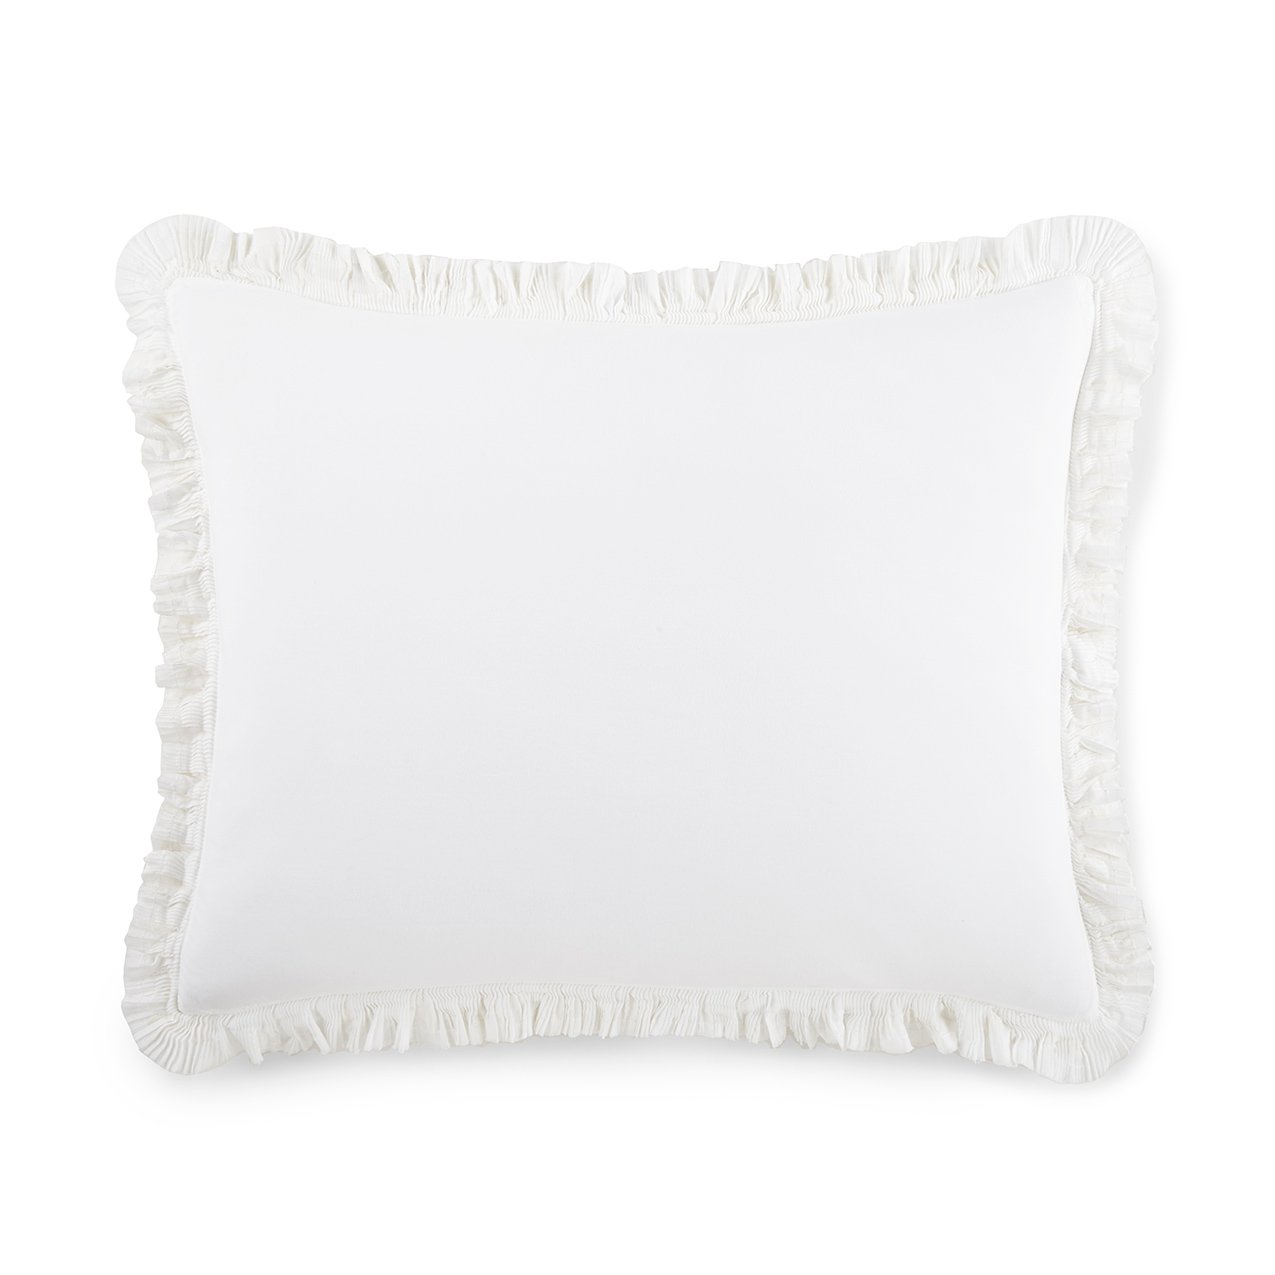 white ruffled edge pillow sham